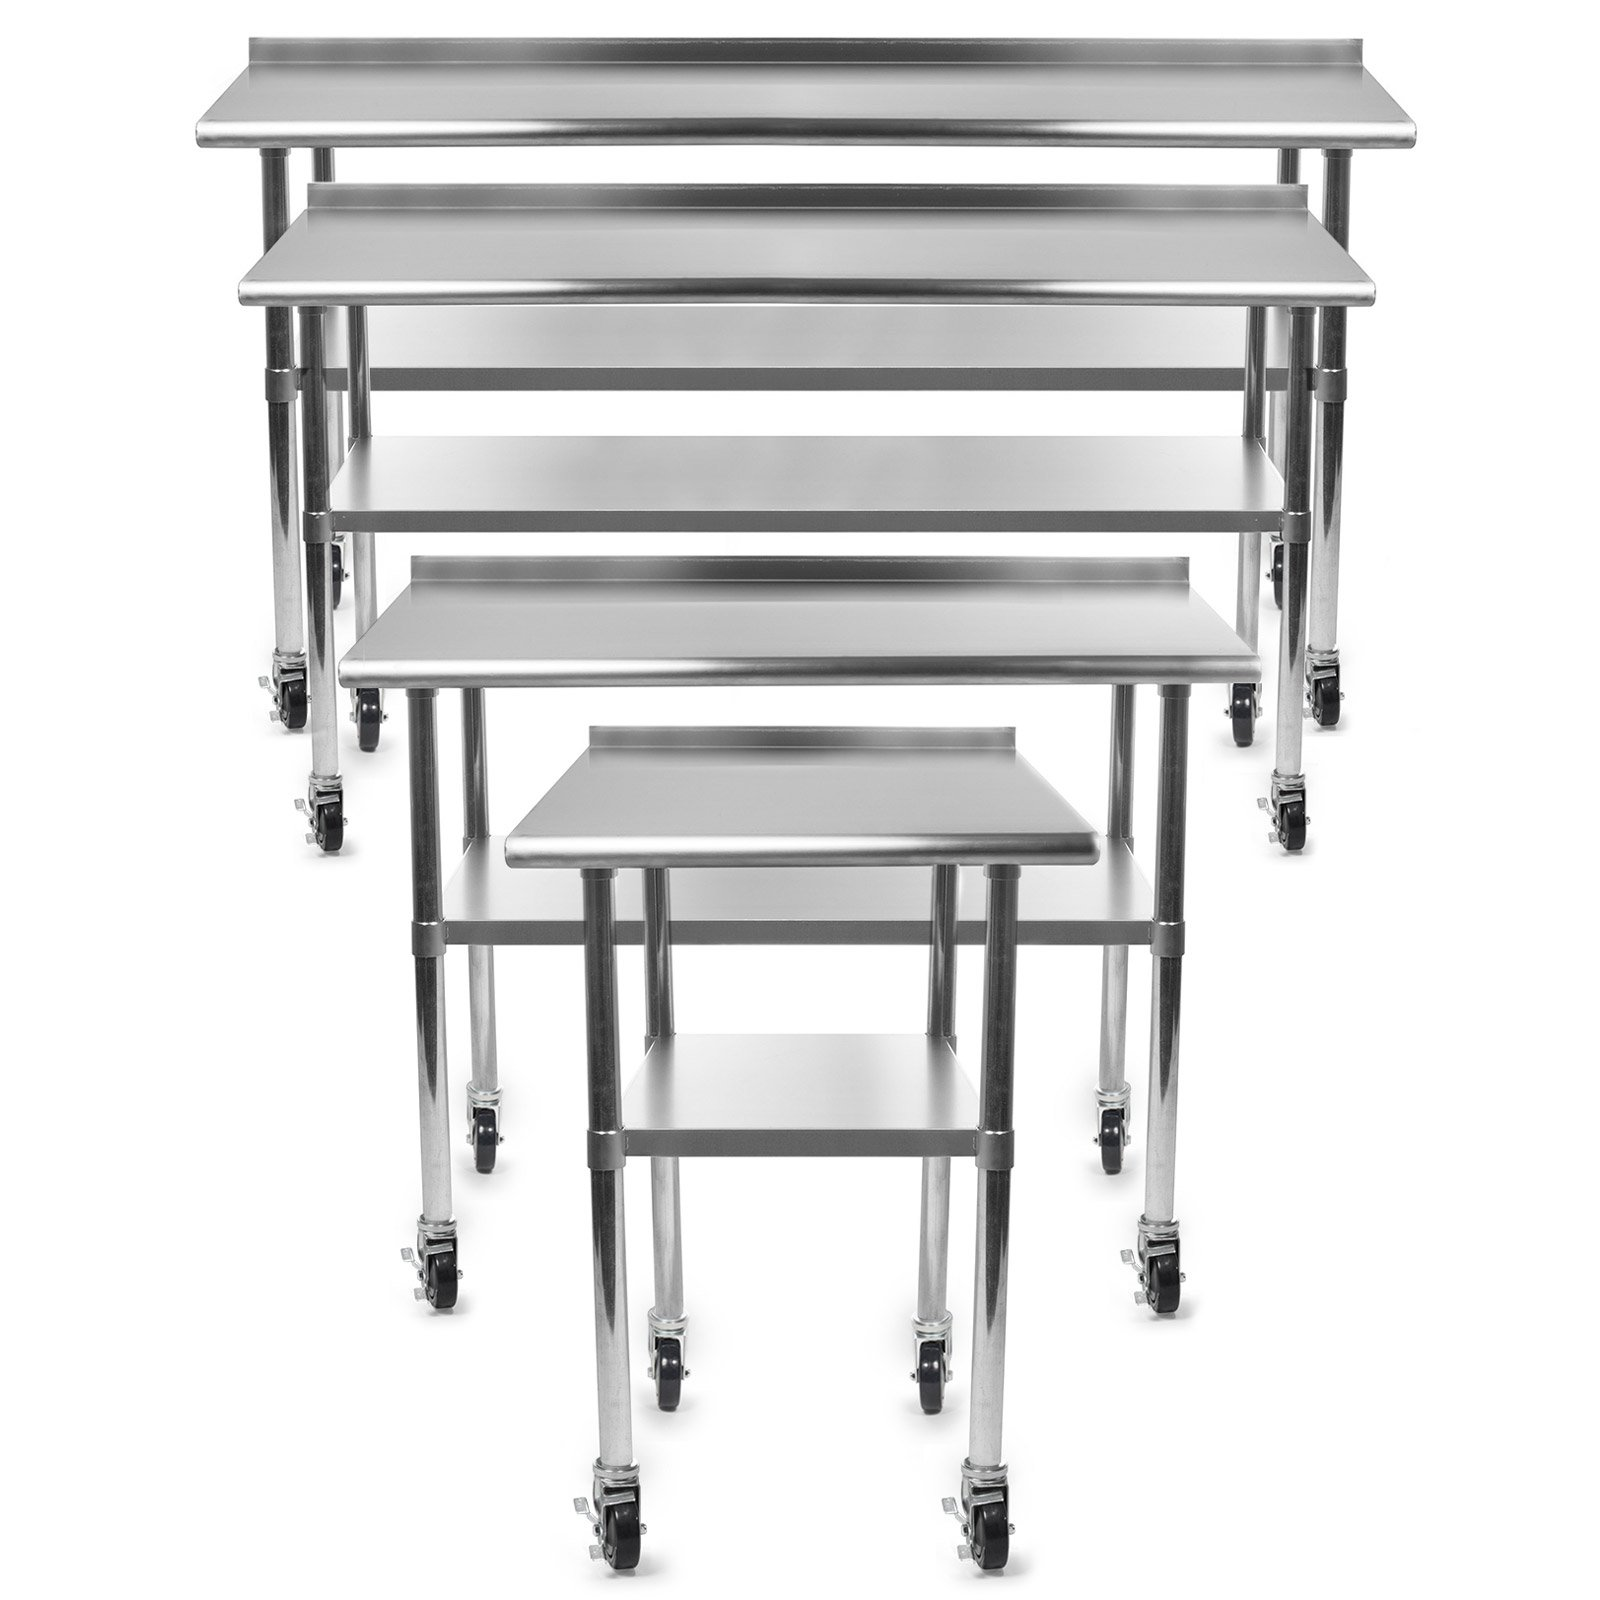 Gridmann NSF Stainless Steel Commercial Kitchen Prep & Work Table w/ Backsplash Plus 4 Casters (Wheels) - 36 in. x 24 in.